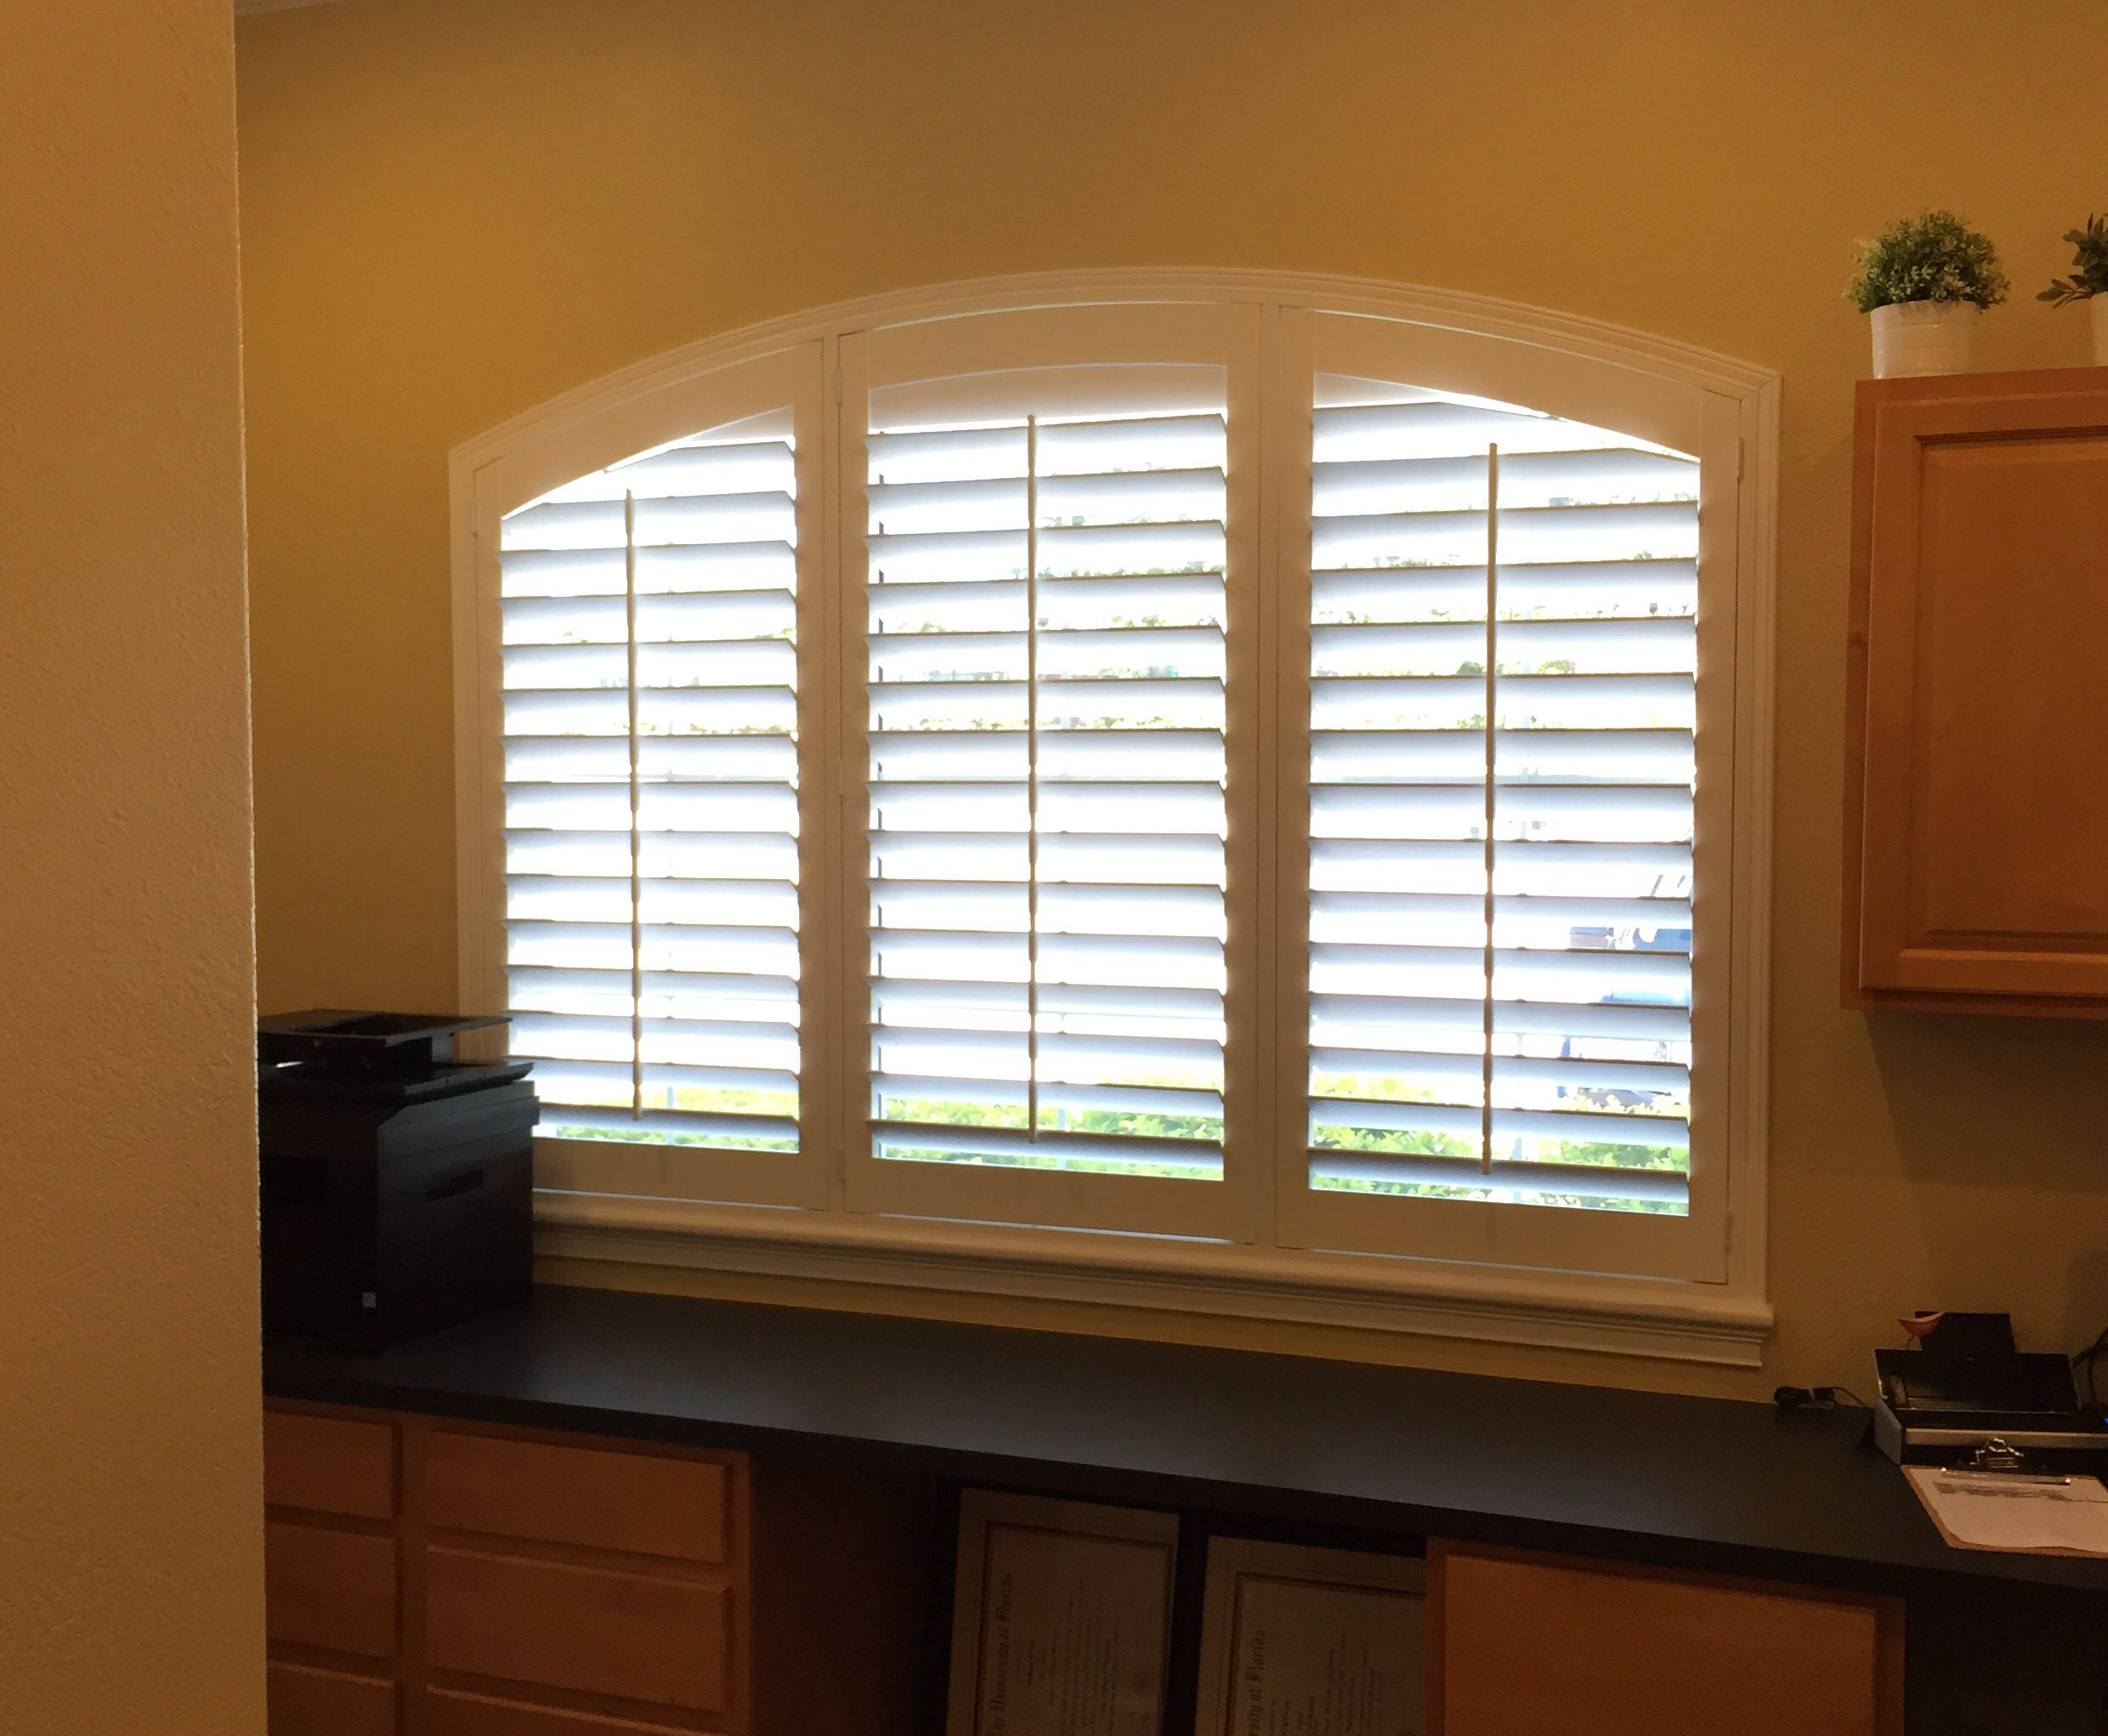 norman plantation normany normanshutters interior blinds htm faux shutters window wood orlando